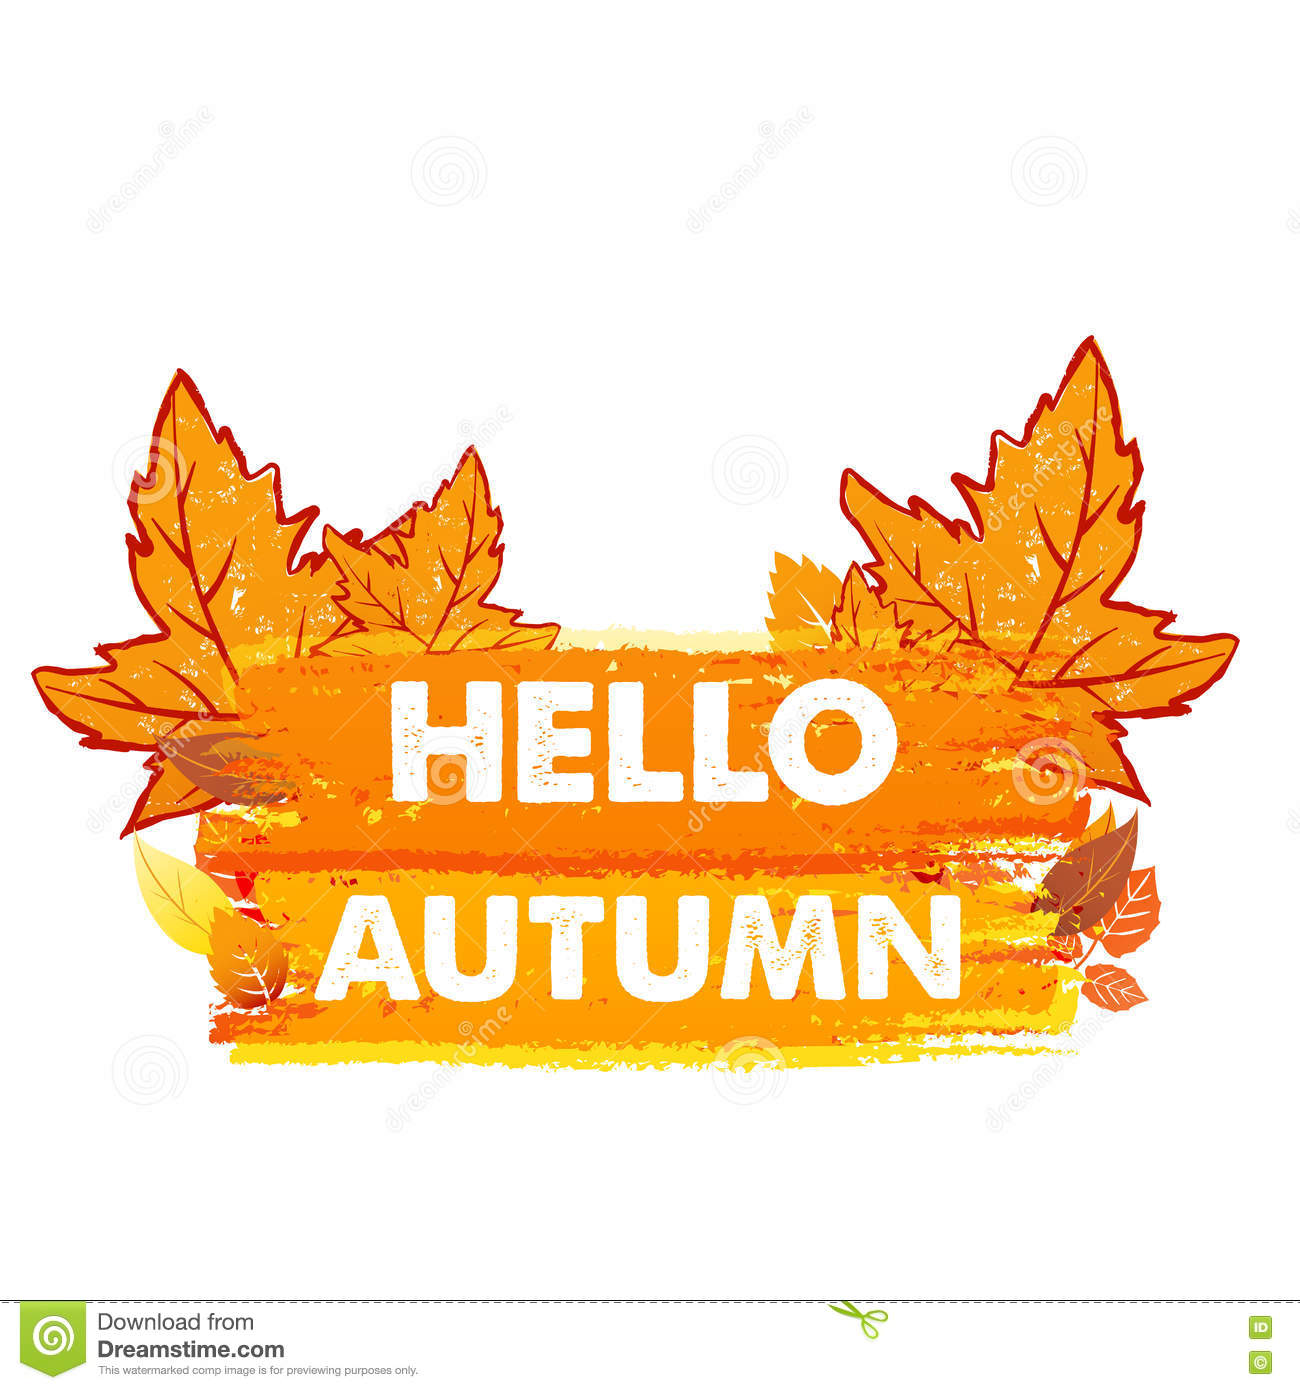 Hello Autumn With Leaves, Drawn Banner Stock Illustration ...